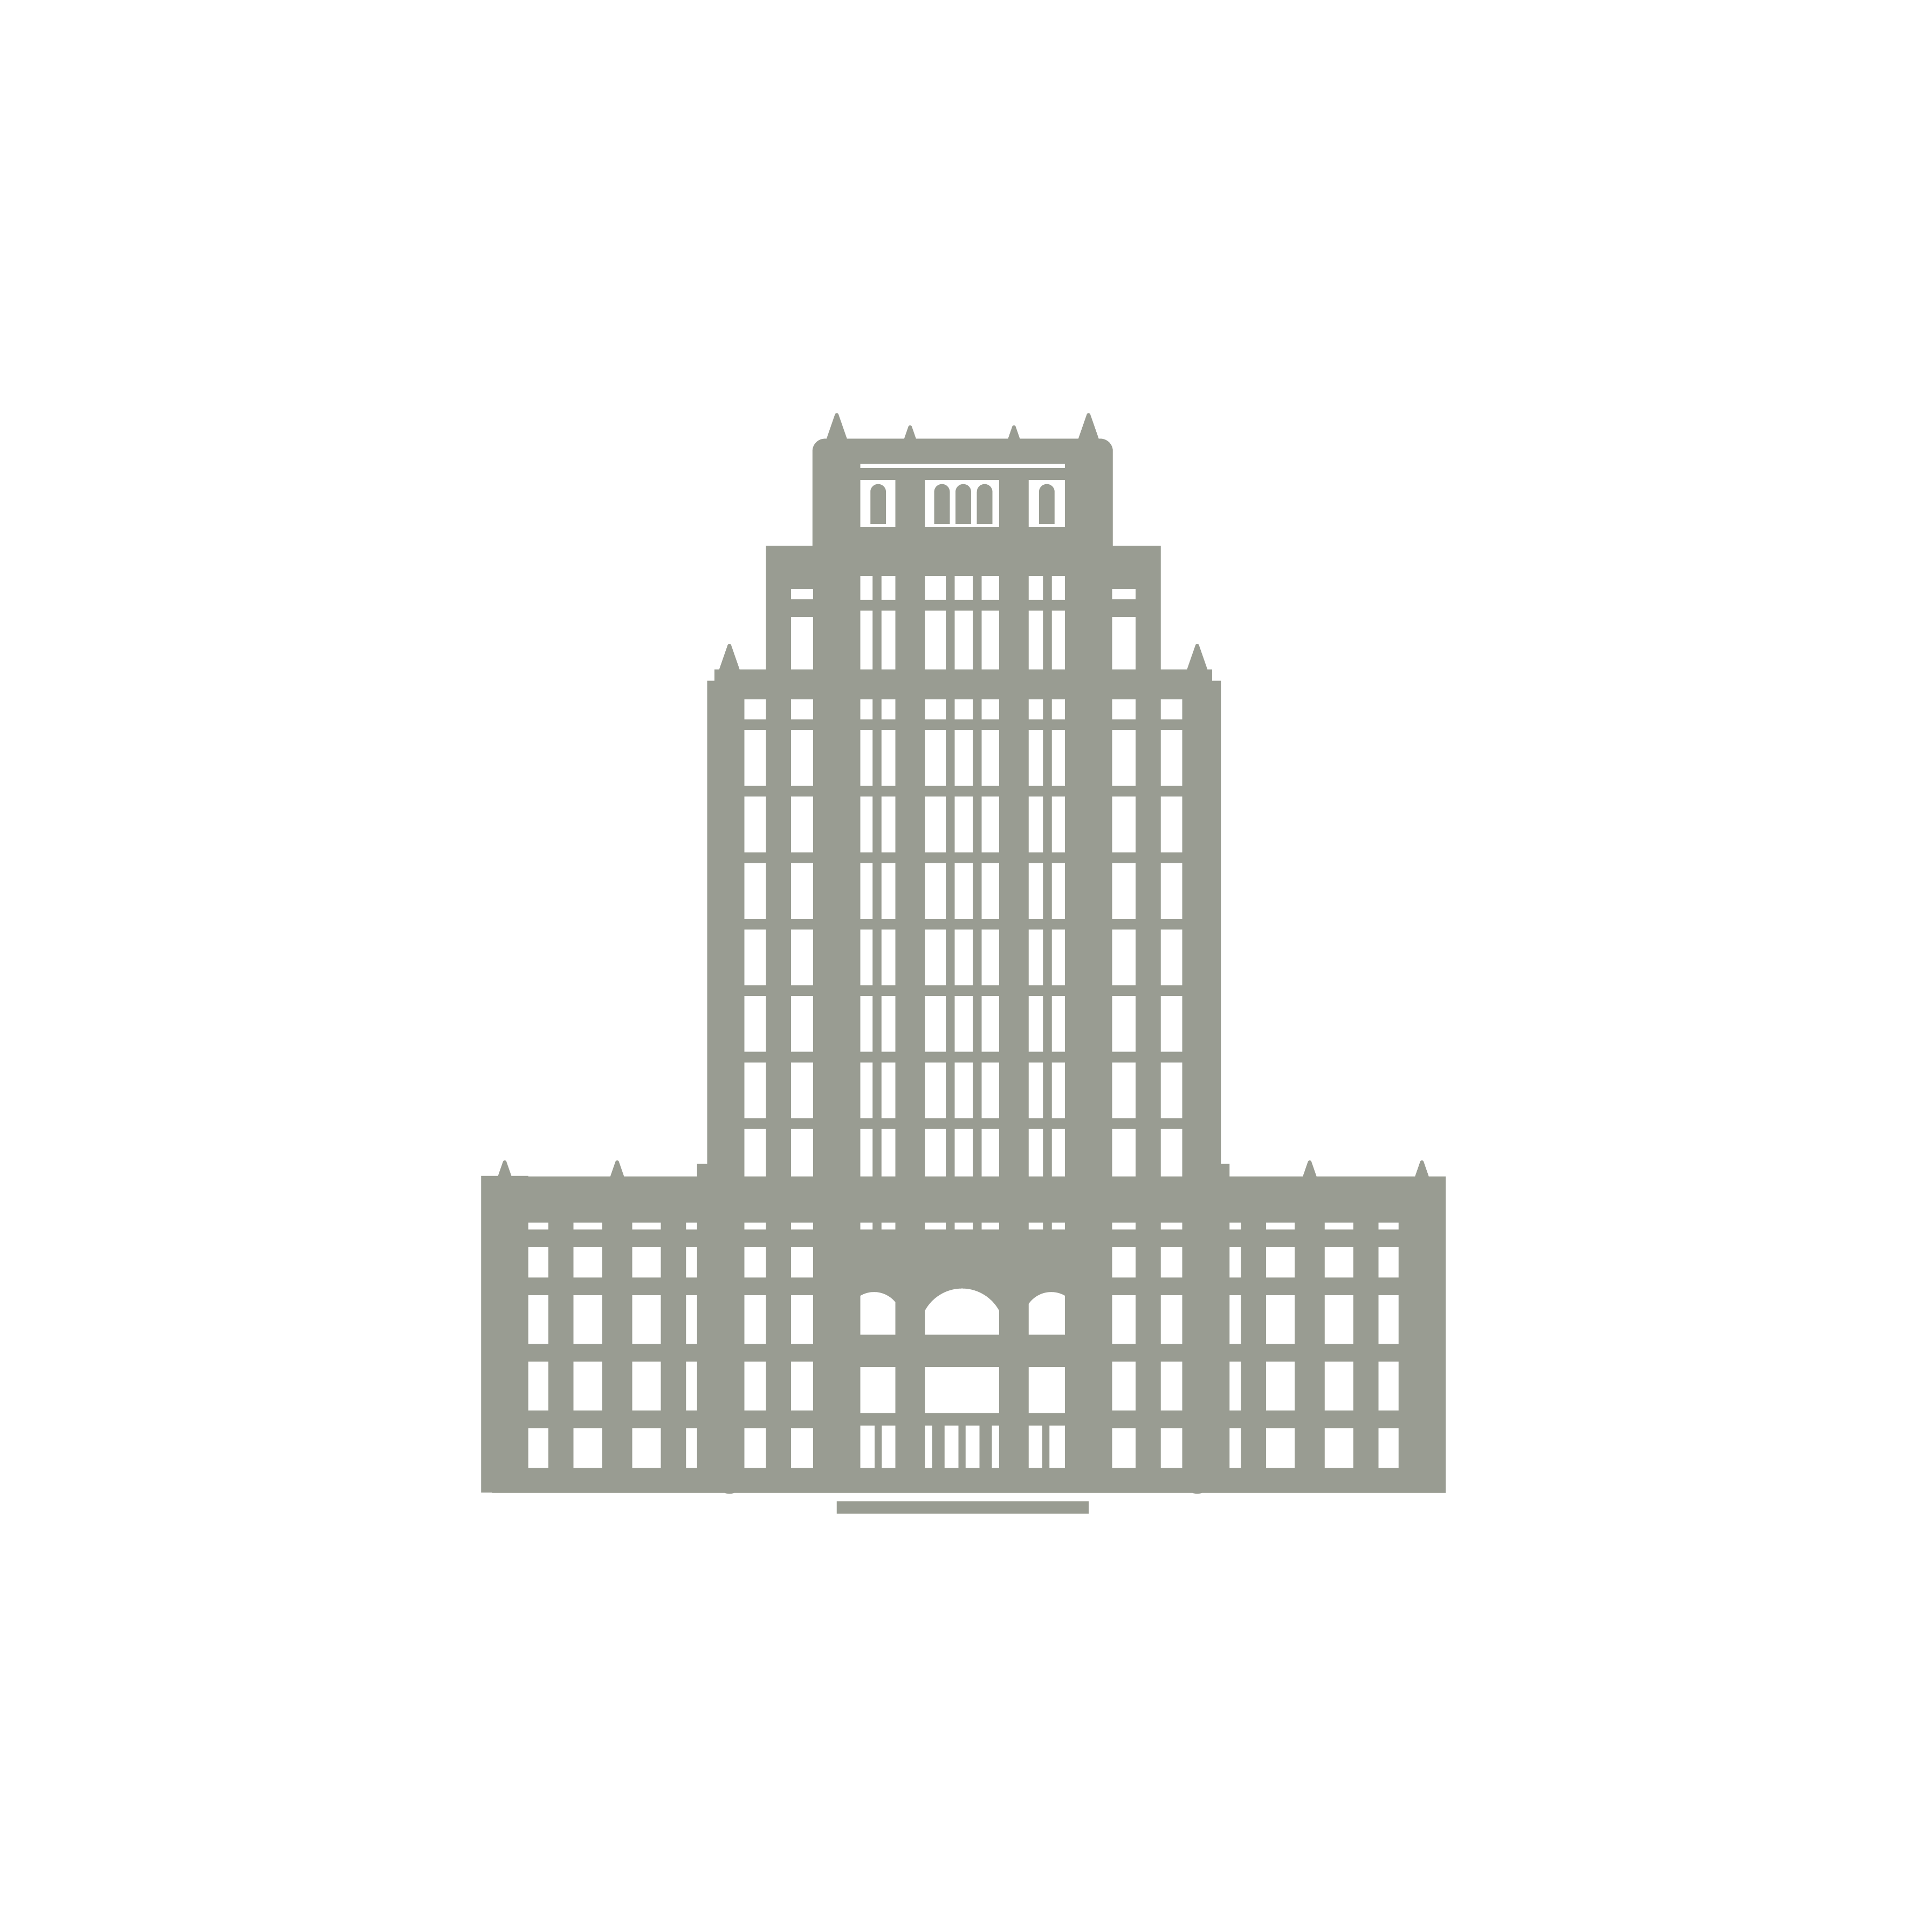 Vector buildings minimalist. Simple city building illustrations